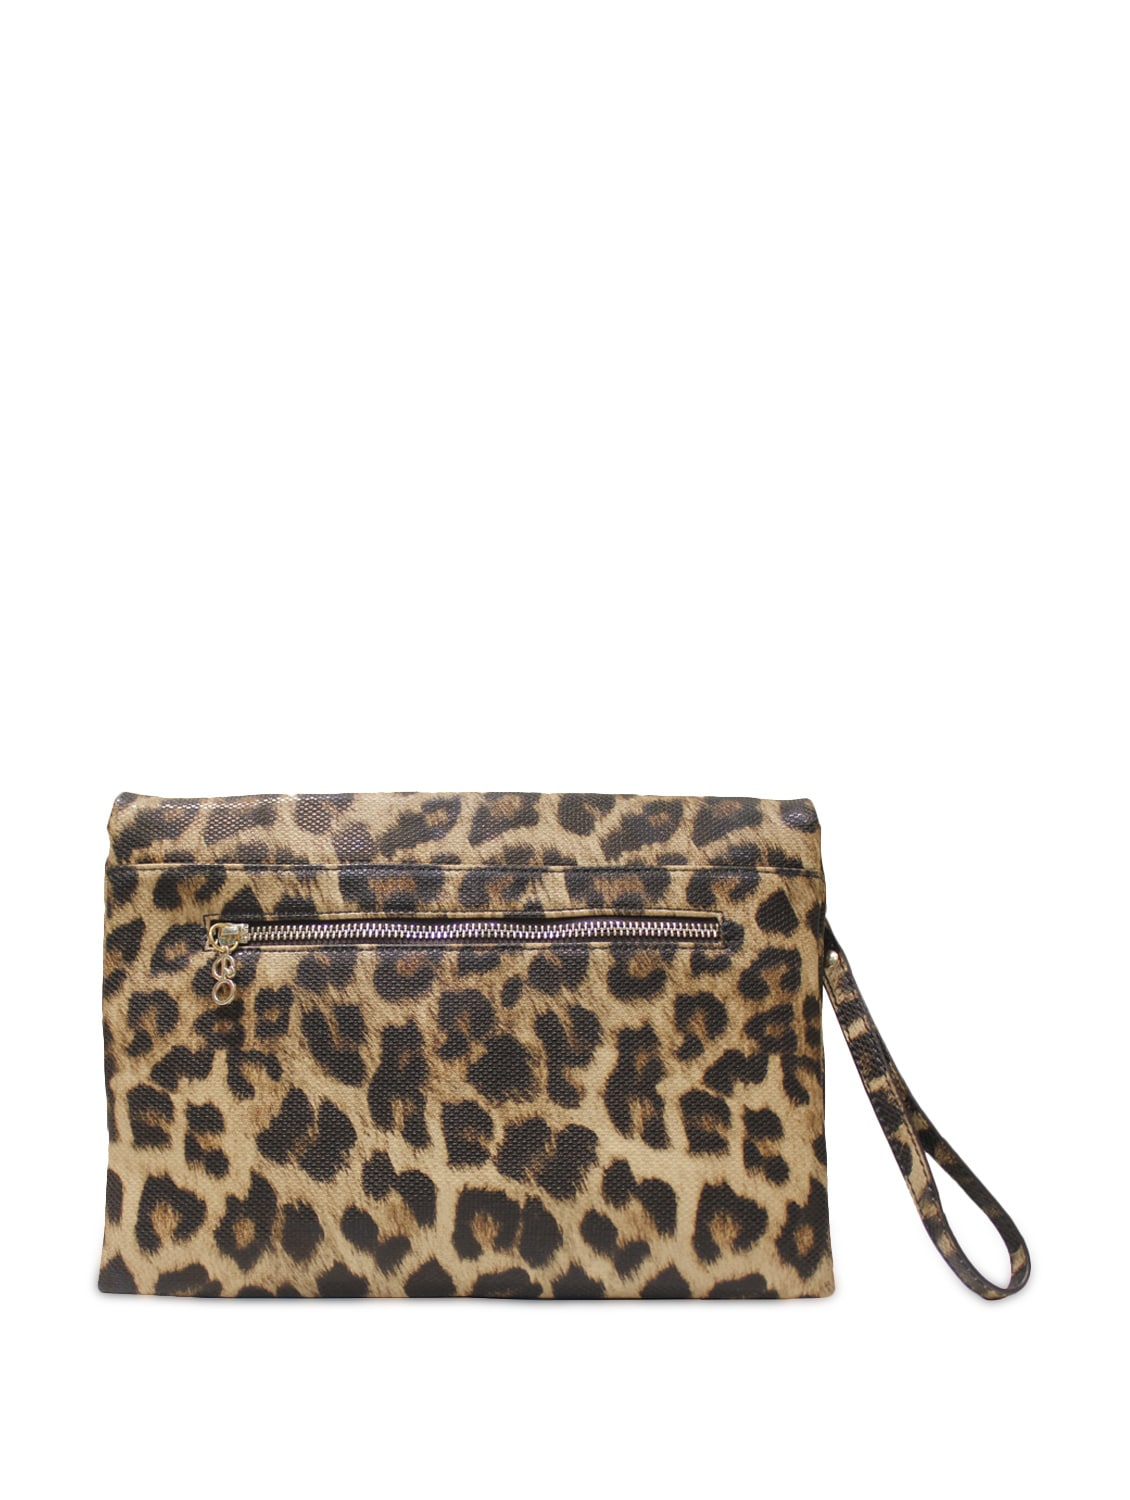 Leopard Print Sling Bag By E2o Online Ping For Bags In India 46240